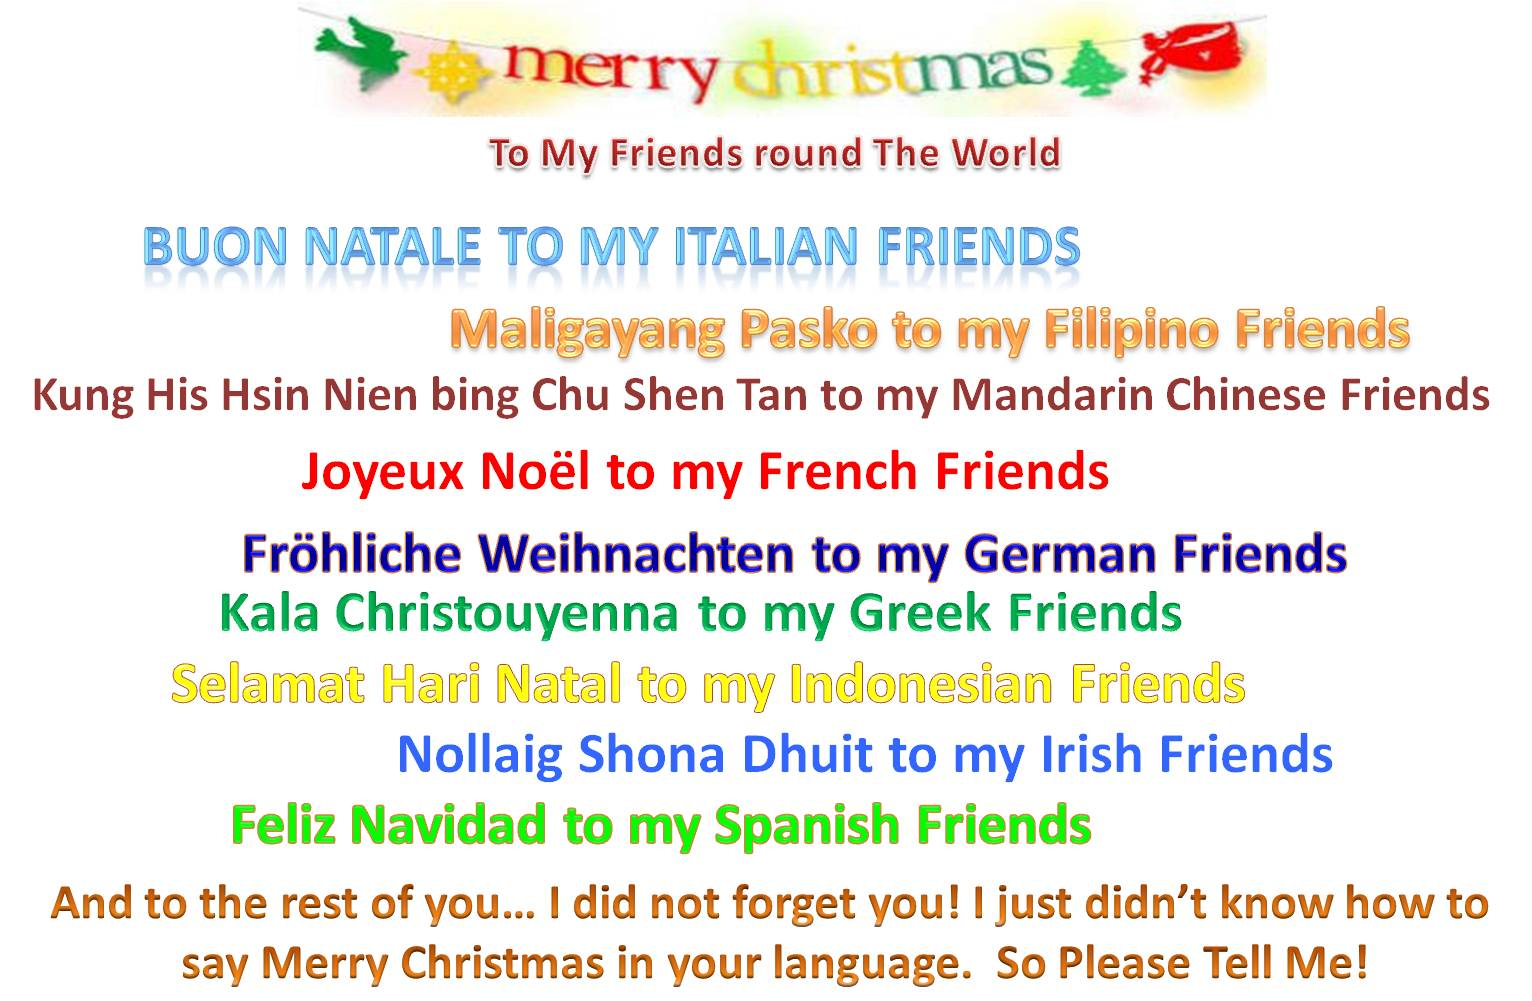 merry christmas around the world christmas greetings merrychristmasaroundtheworld_3_mzoom1376068848520524f05d4b0 5279885313_aef1784932_z - How Do You Say Merry Christmas In Italian